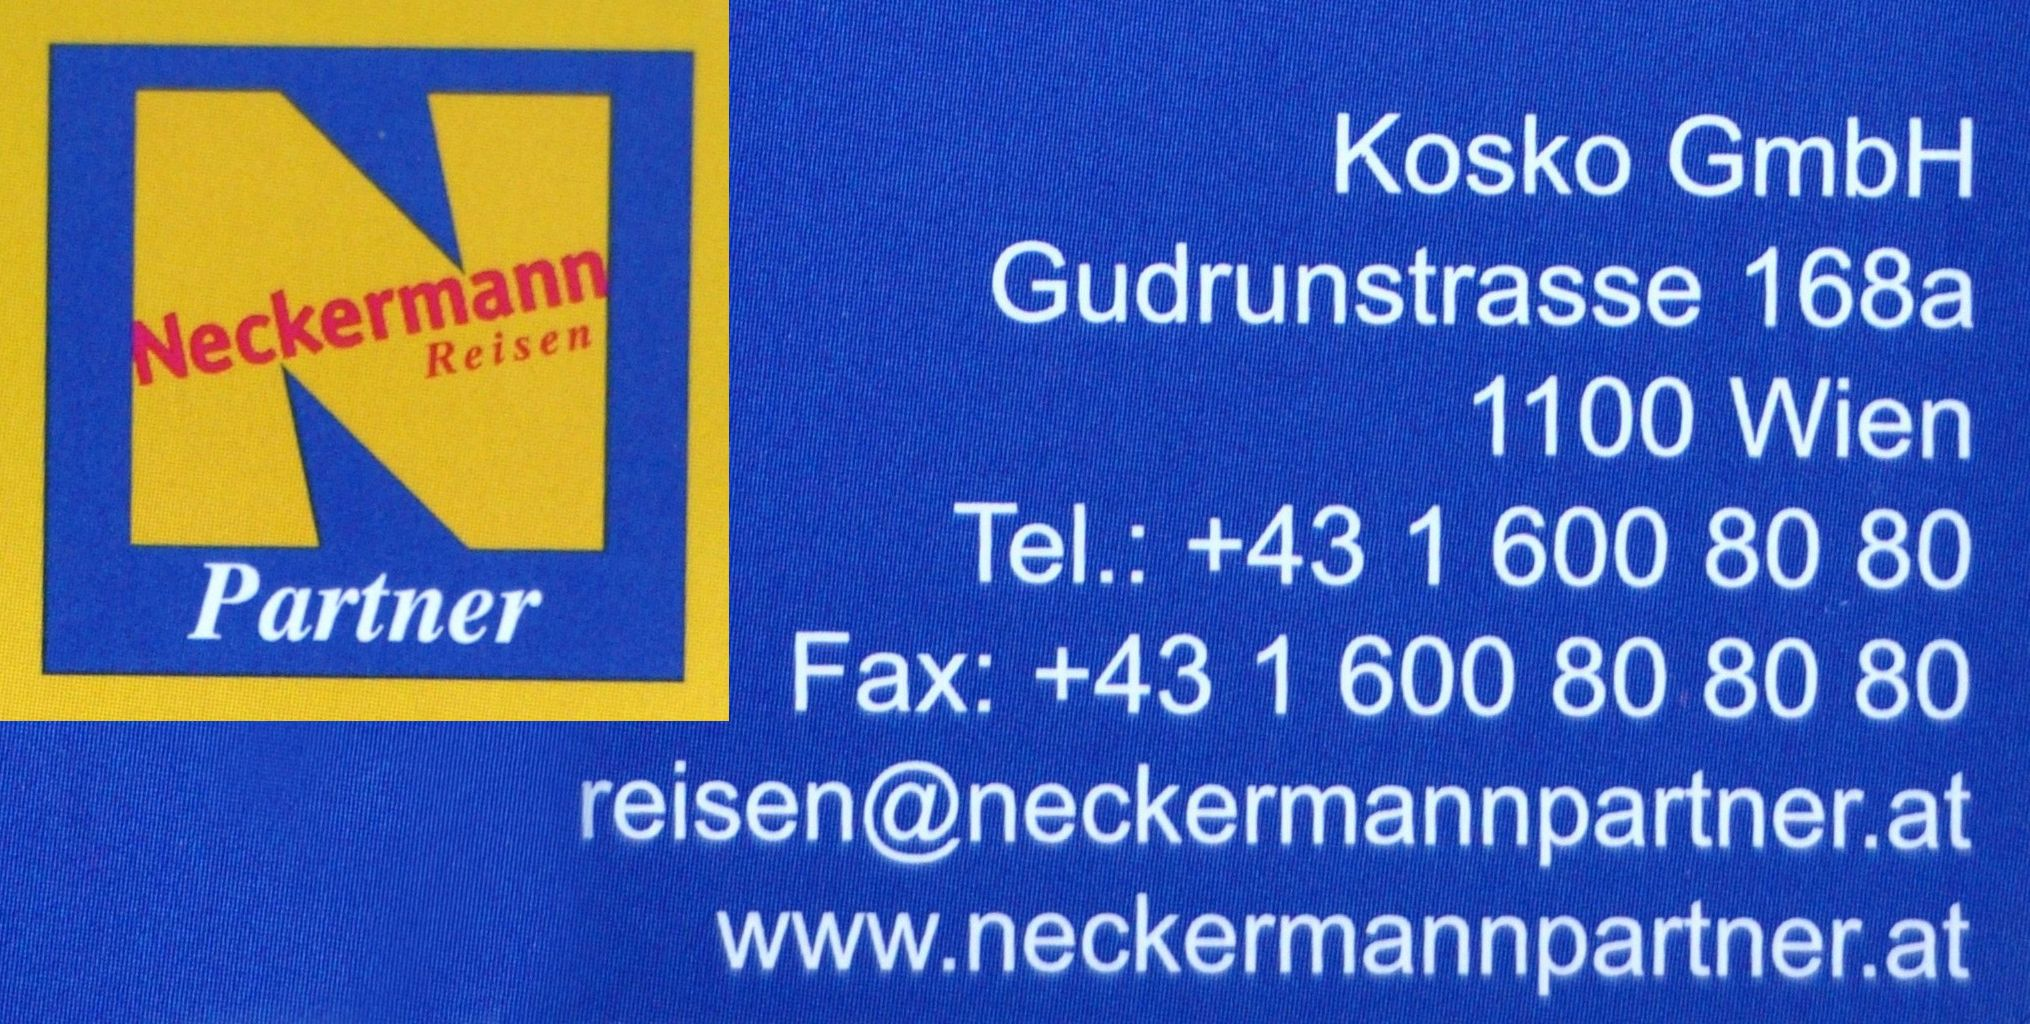 Neckermannpartner.at